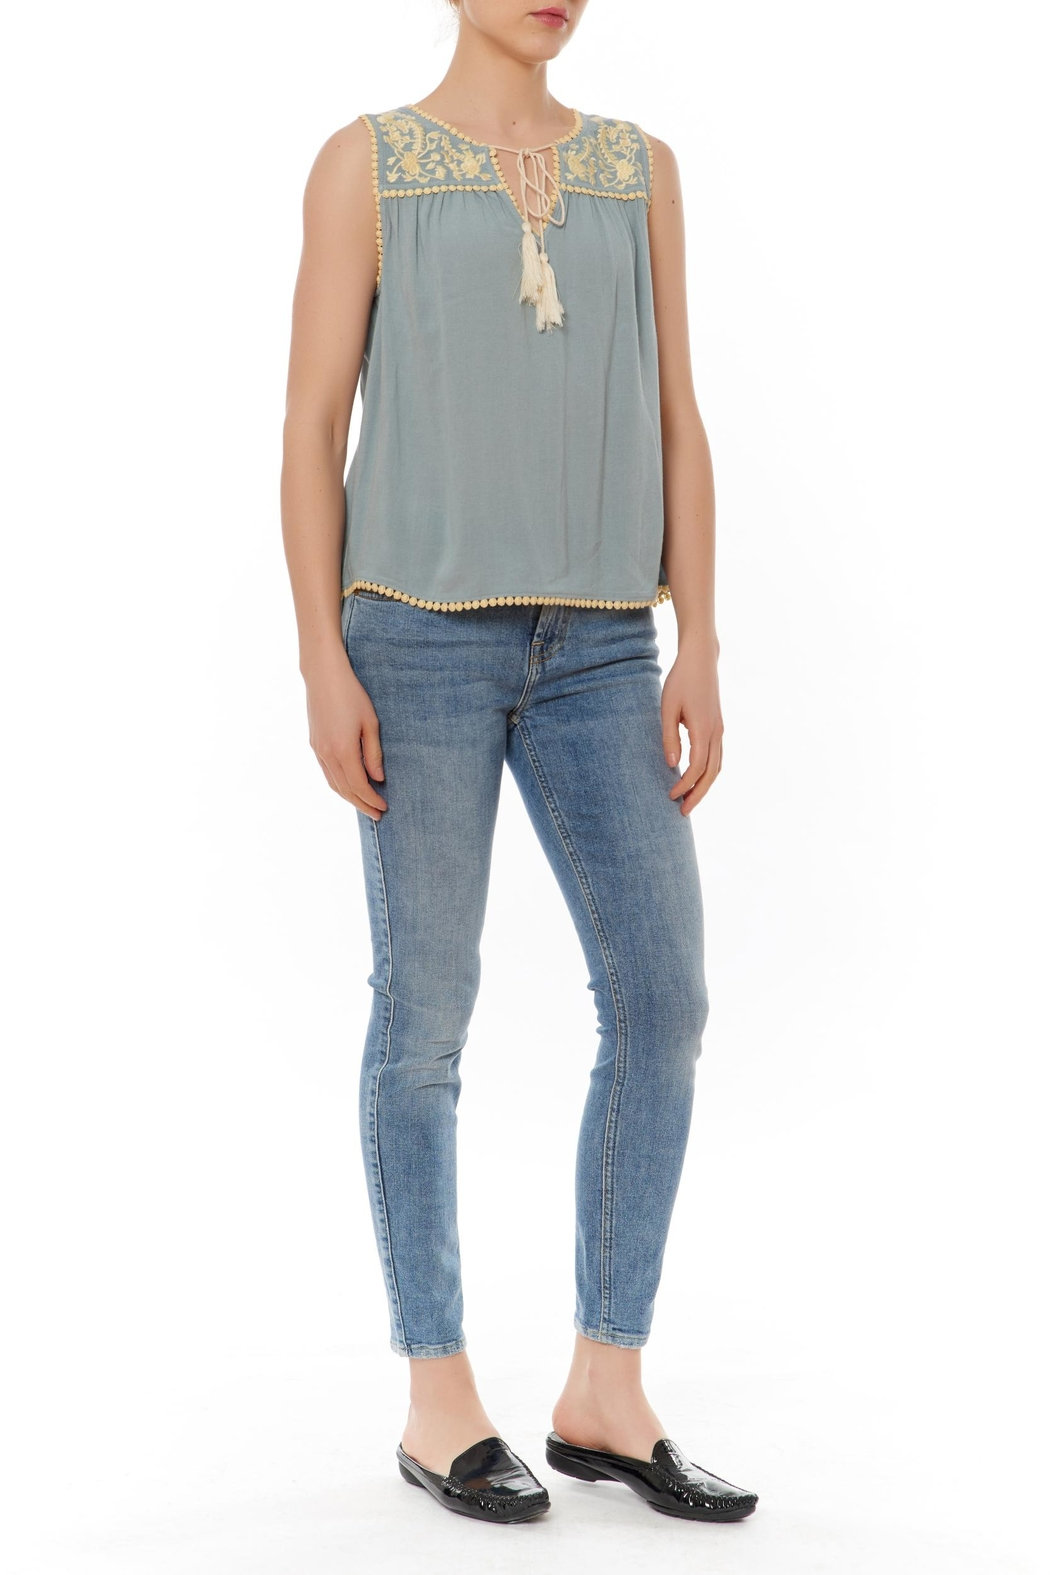 Thml Embellished Yoke Top - Front Cropped Image